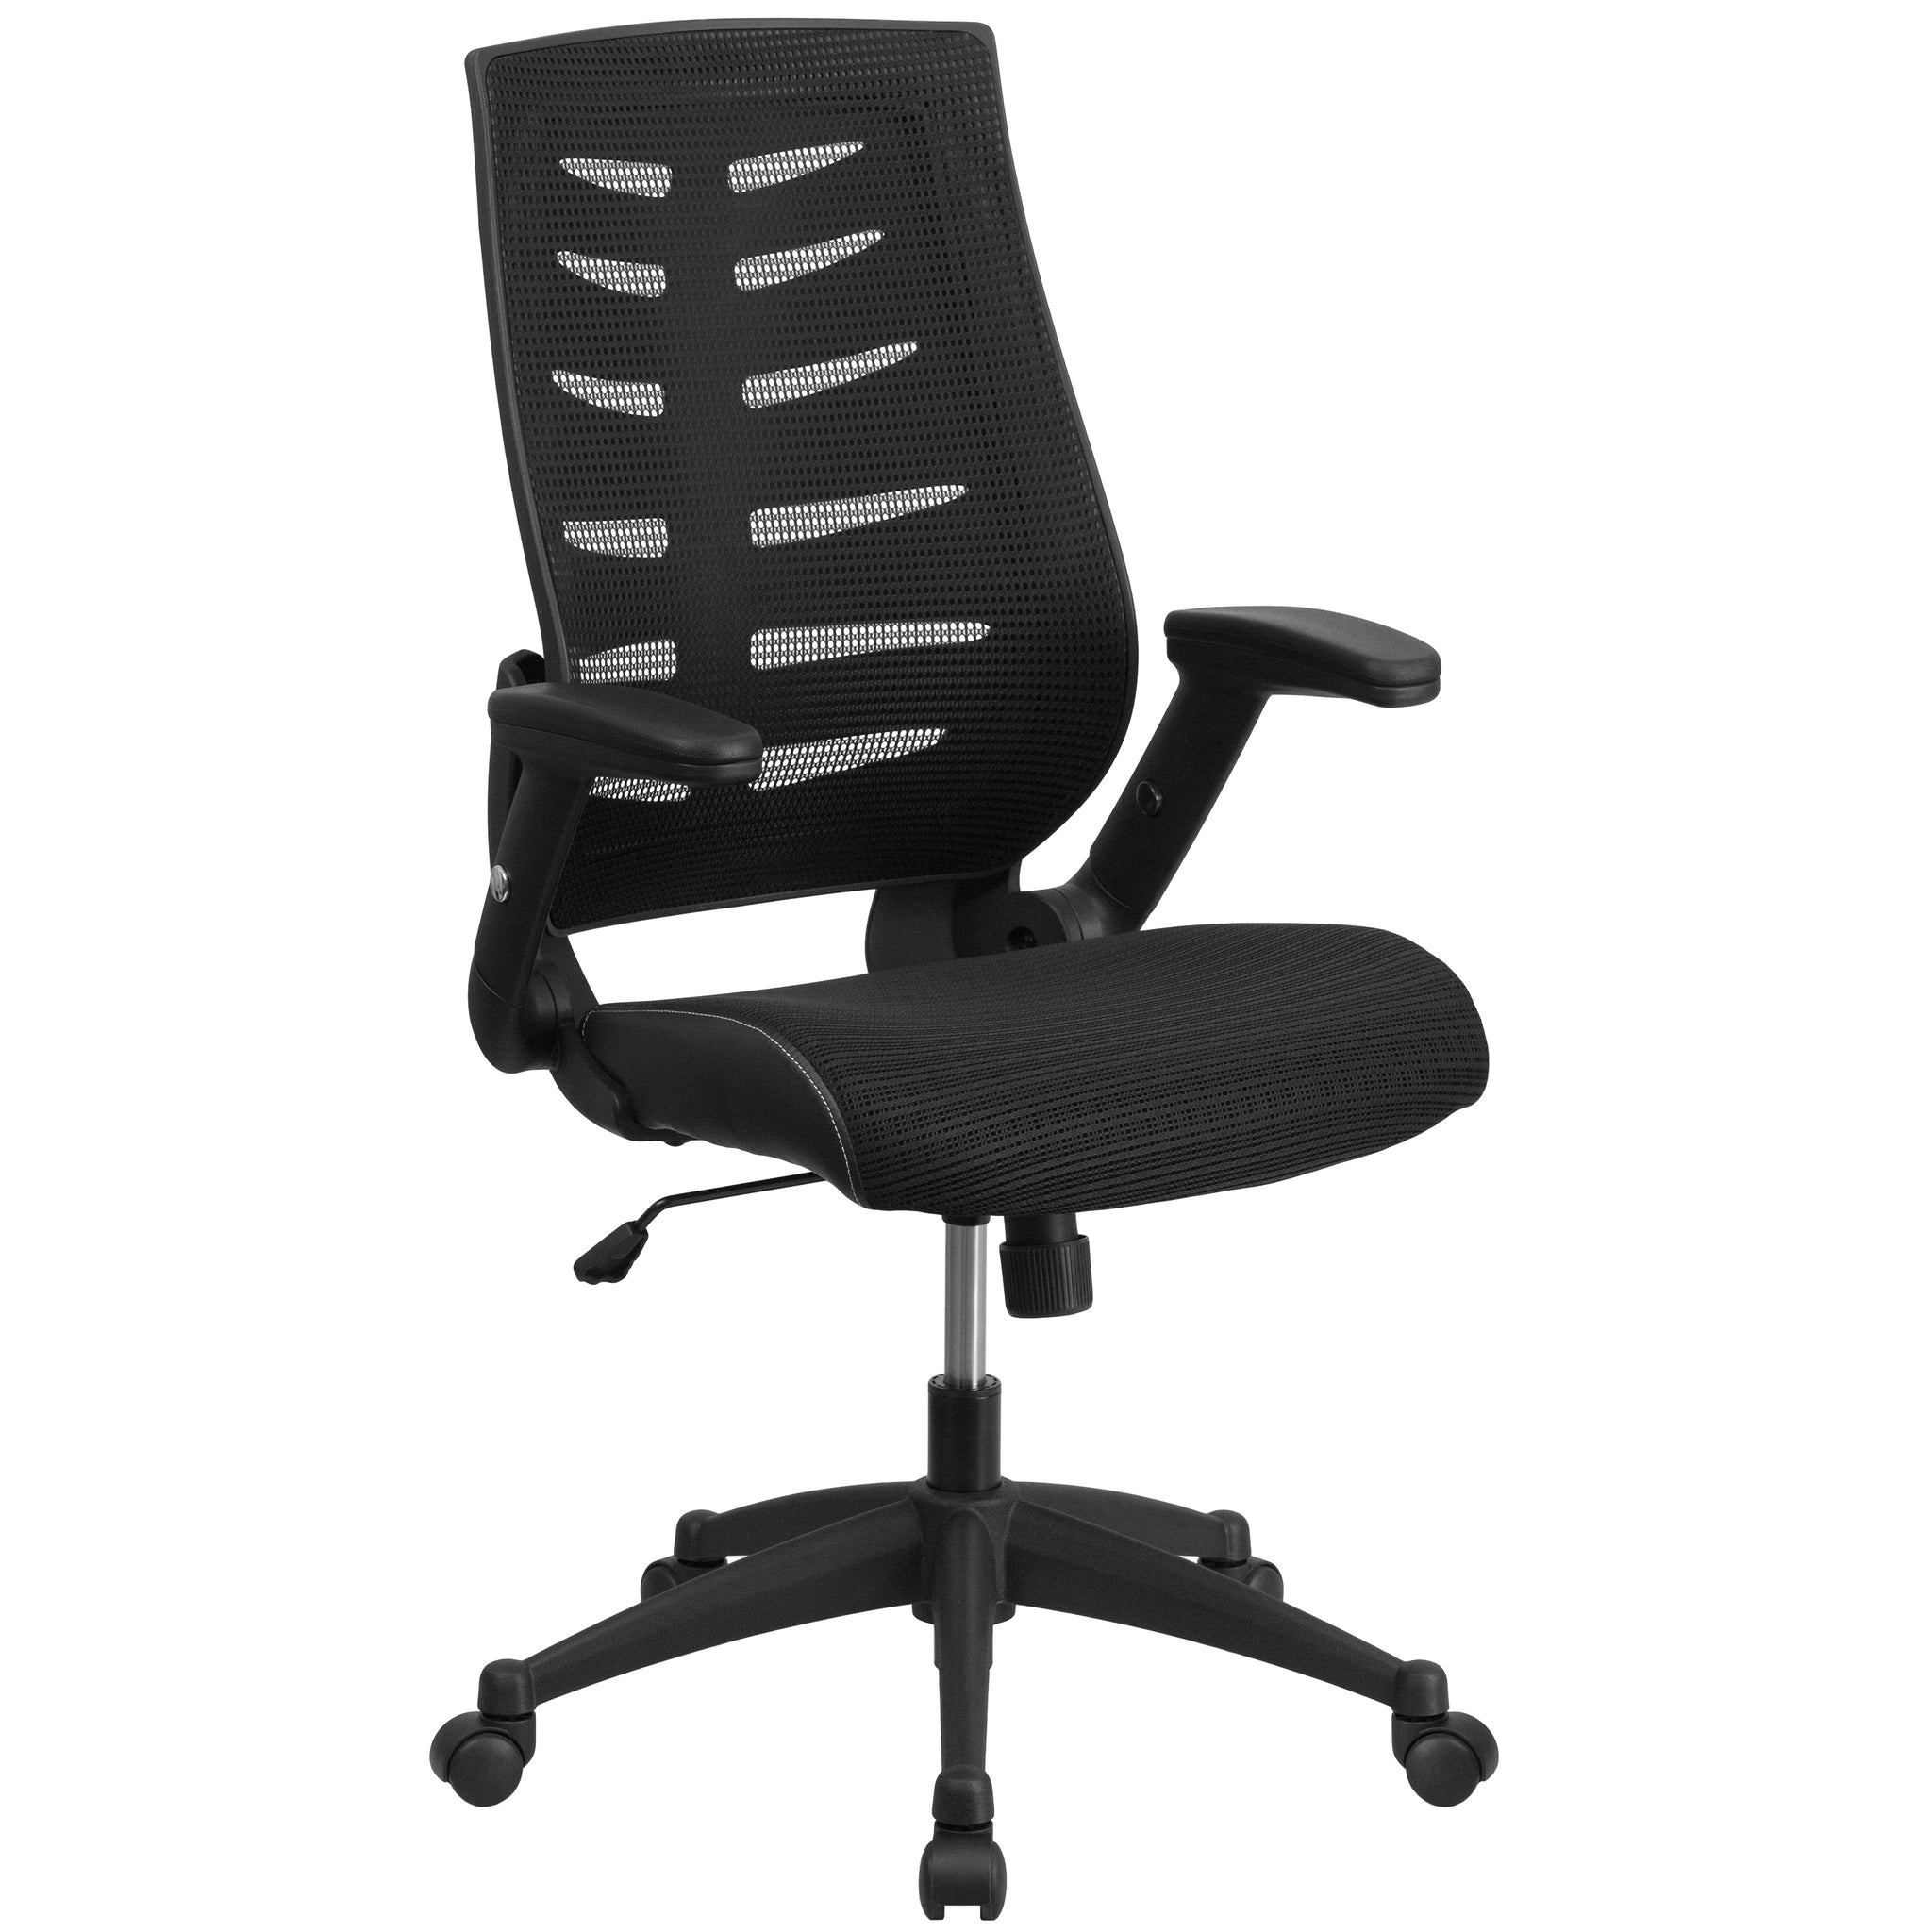 High Back Designer Mesh Executive Swivel Office Chair with Height Adjustable Flip-Up Arms: Black